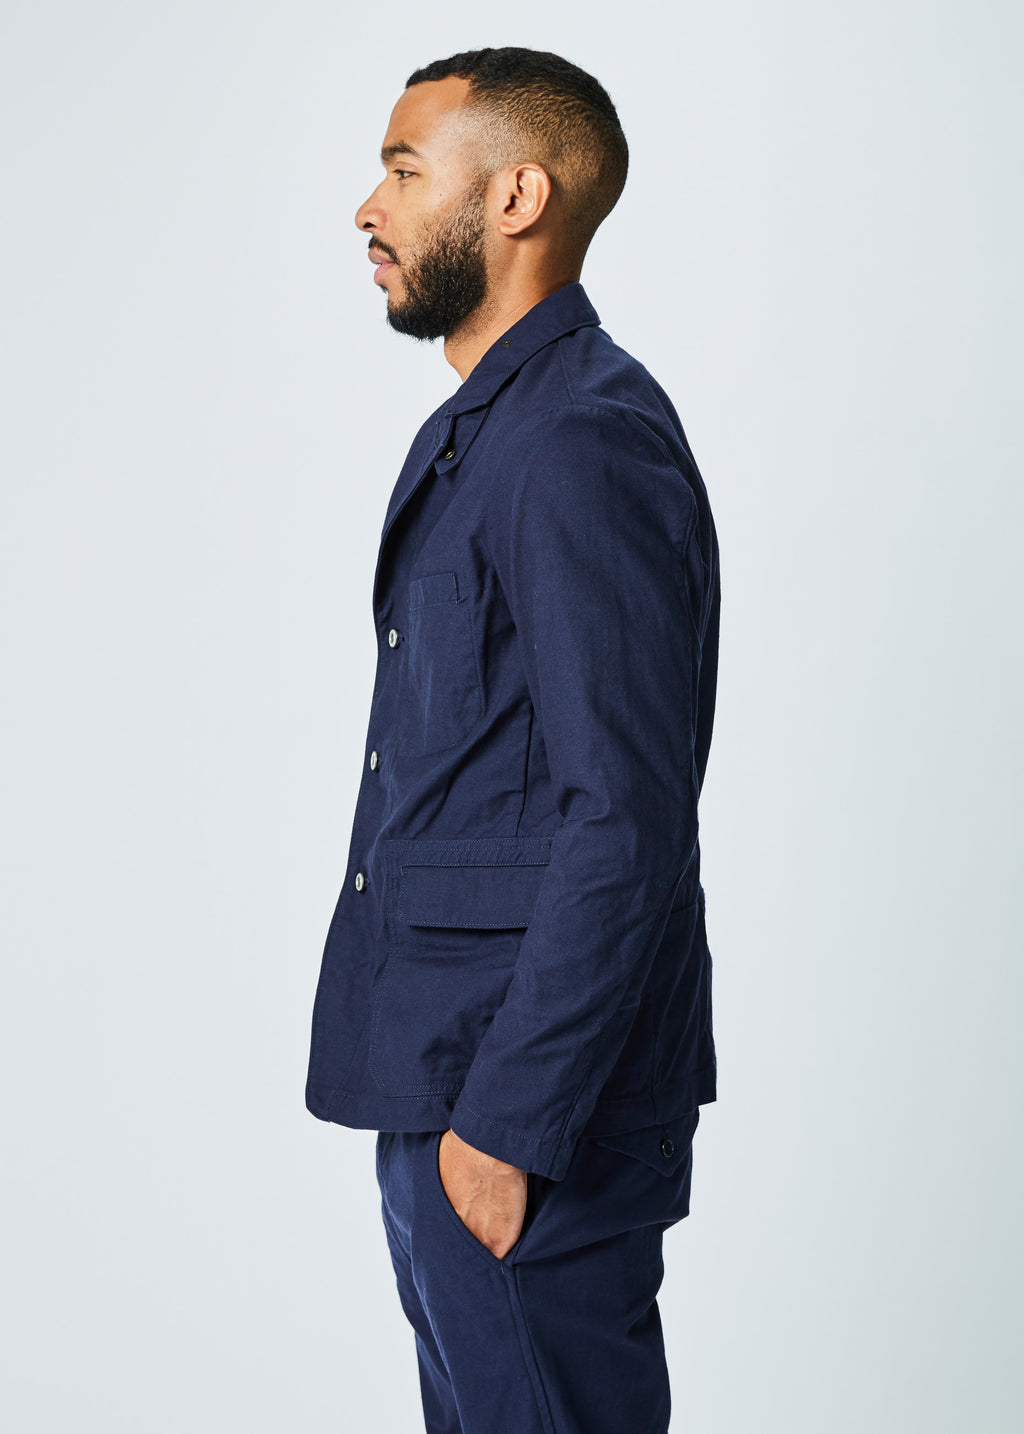 Riveted Utility Blazer